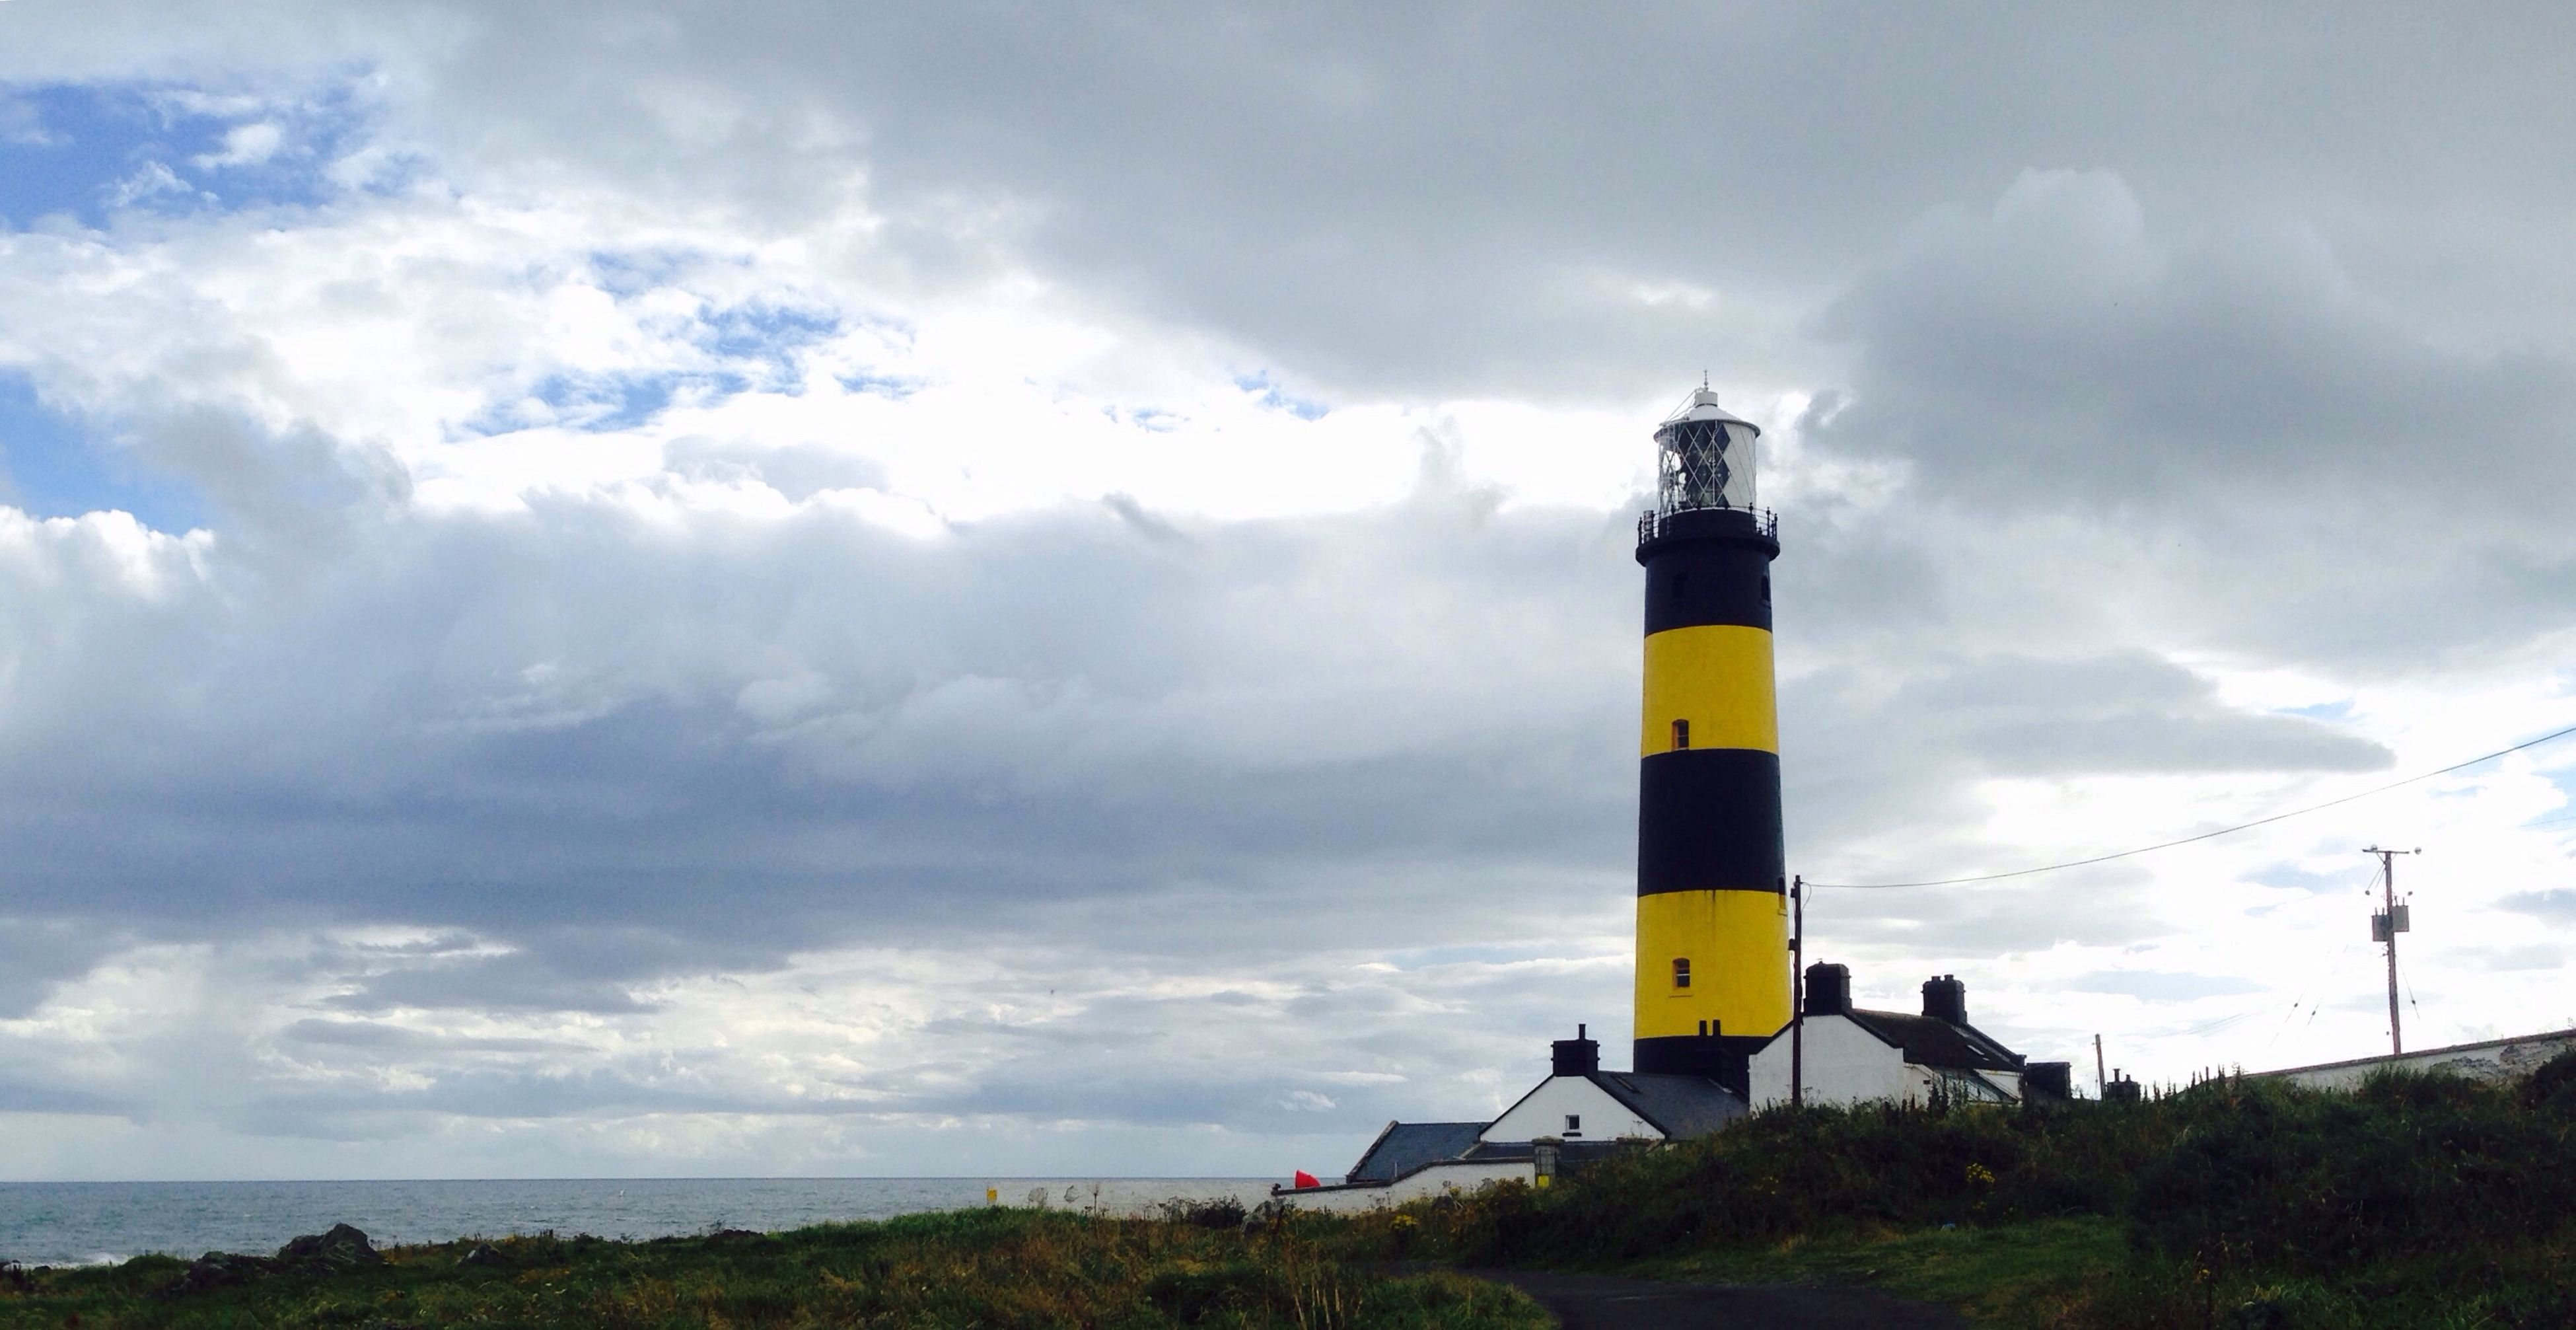 lighthouse, architecture, built structure, guidance, tower, building exterior, sky, protection, direction, yellow, cloud - sky, cloud, cloudy, field, outdoors, sea, nature, day, tall - high, tranquility, tranquil scene, tall, cloudscape, storm cloud, no people, scenics, green color